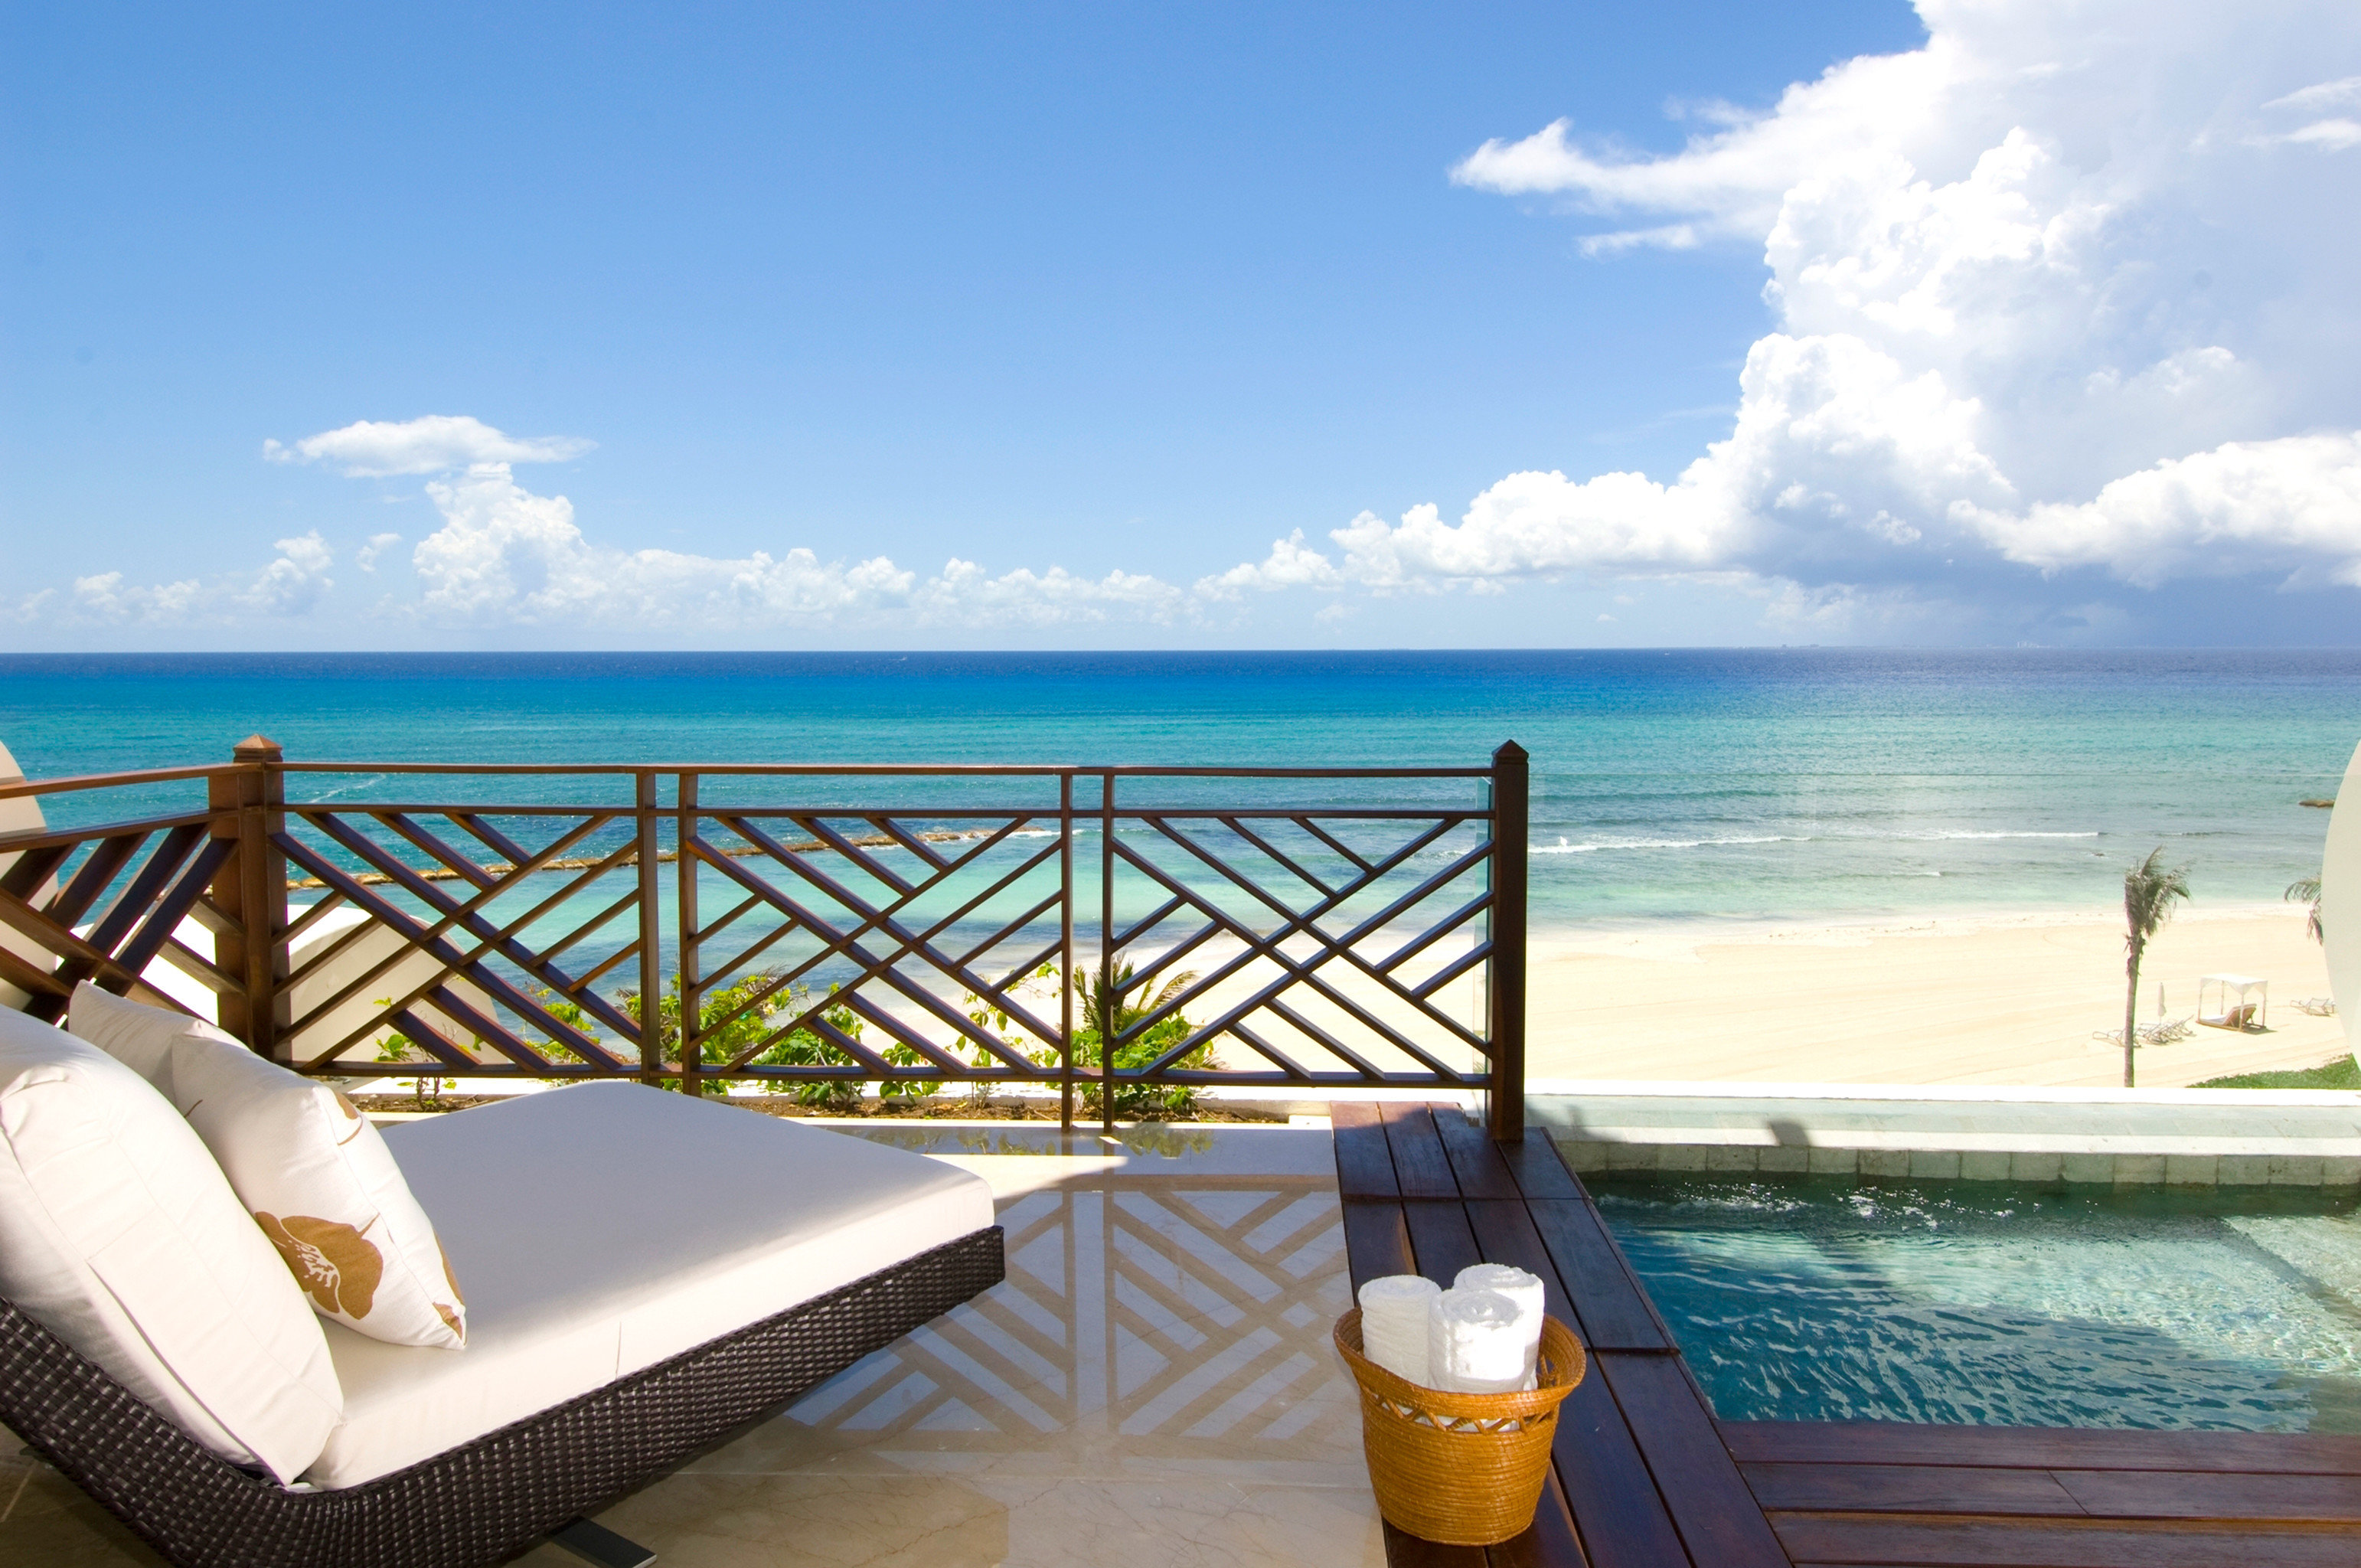 All-Inclusive Resorts Beachfront Elegant Hotels Living Lounge Luxury Modern Romance Scenic views Tropical sky water outdoor property leisure caribbean swimming pool vacation Resort Ocean Sea Beach Villa estate overlooking bay shore day